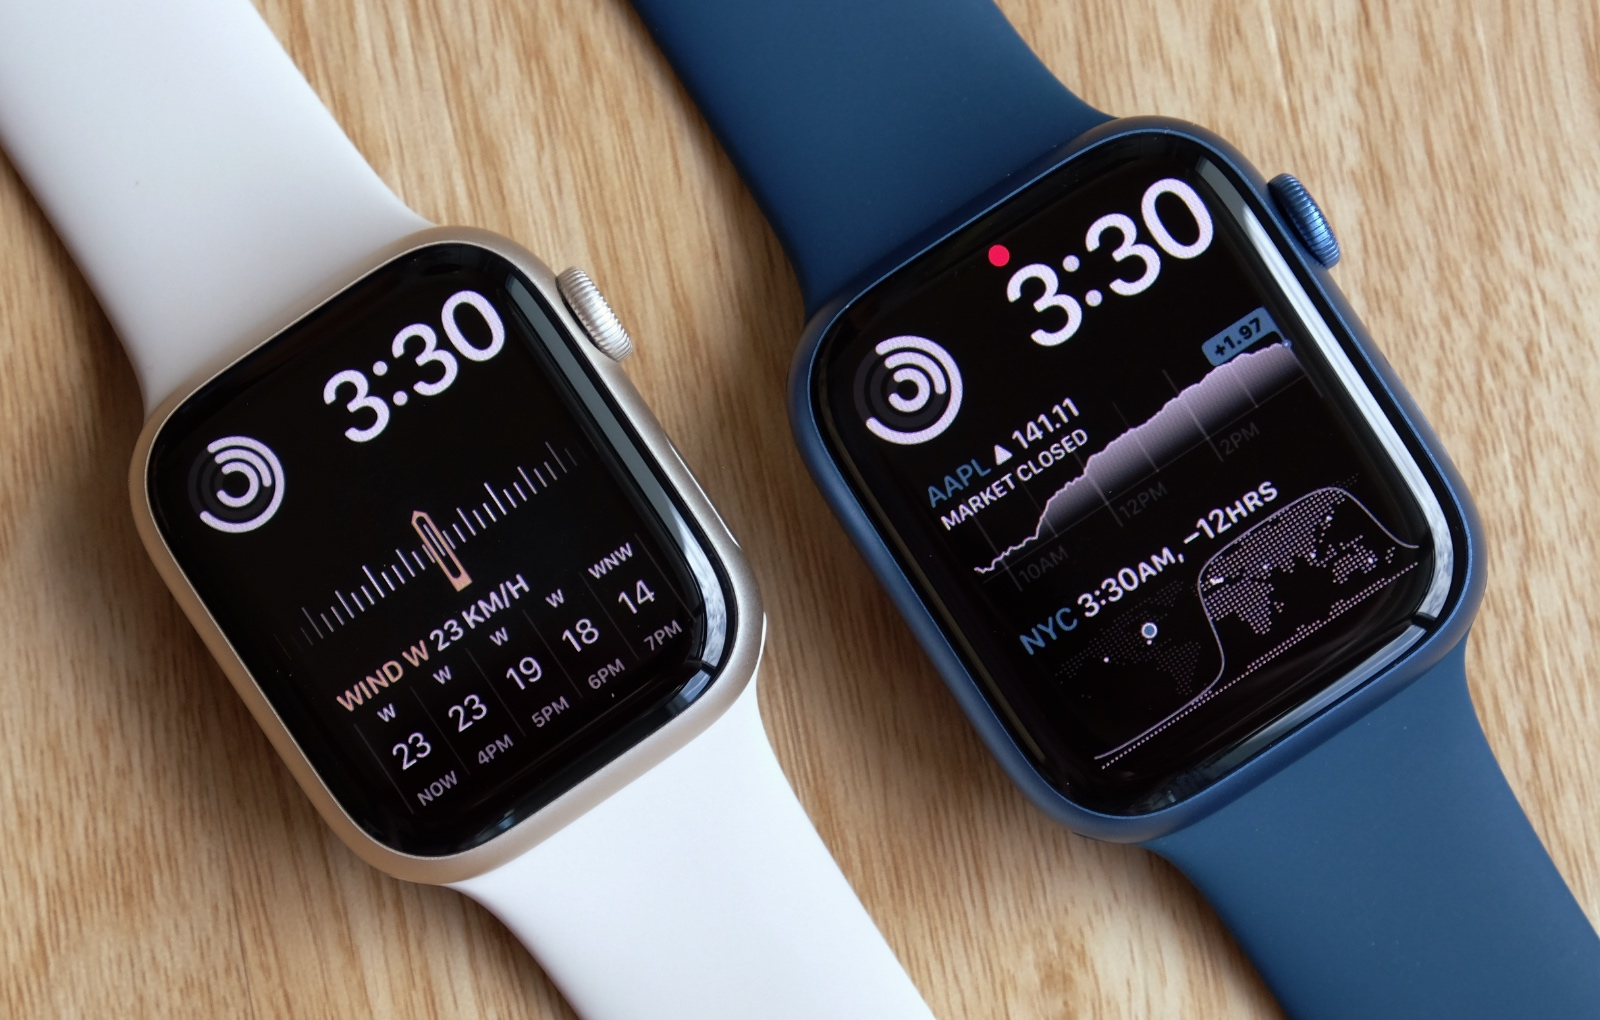 The new Series 7 watches may not be groundbreaking but the larger display helps and they are the best smartwatches you can get if you are an iPhone user.